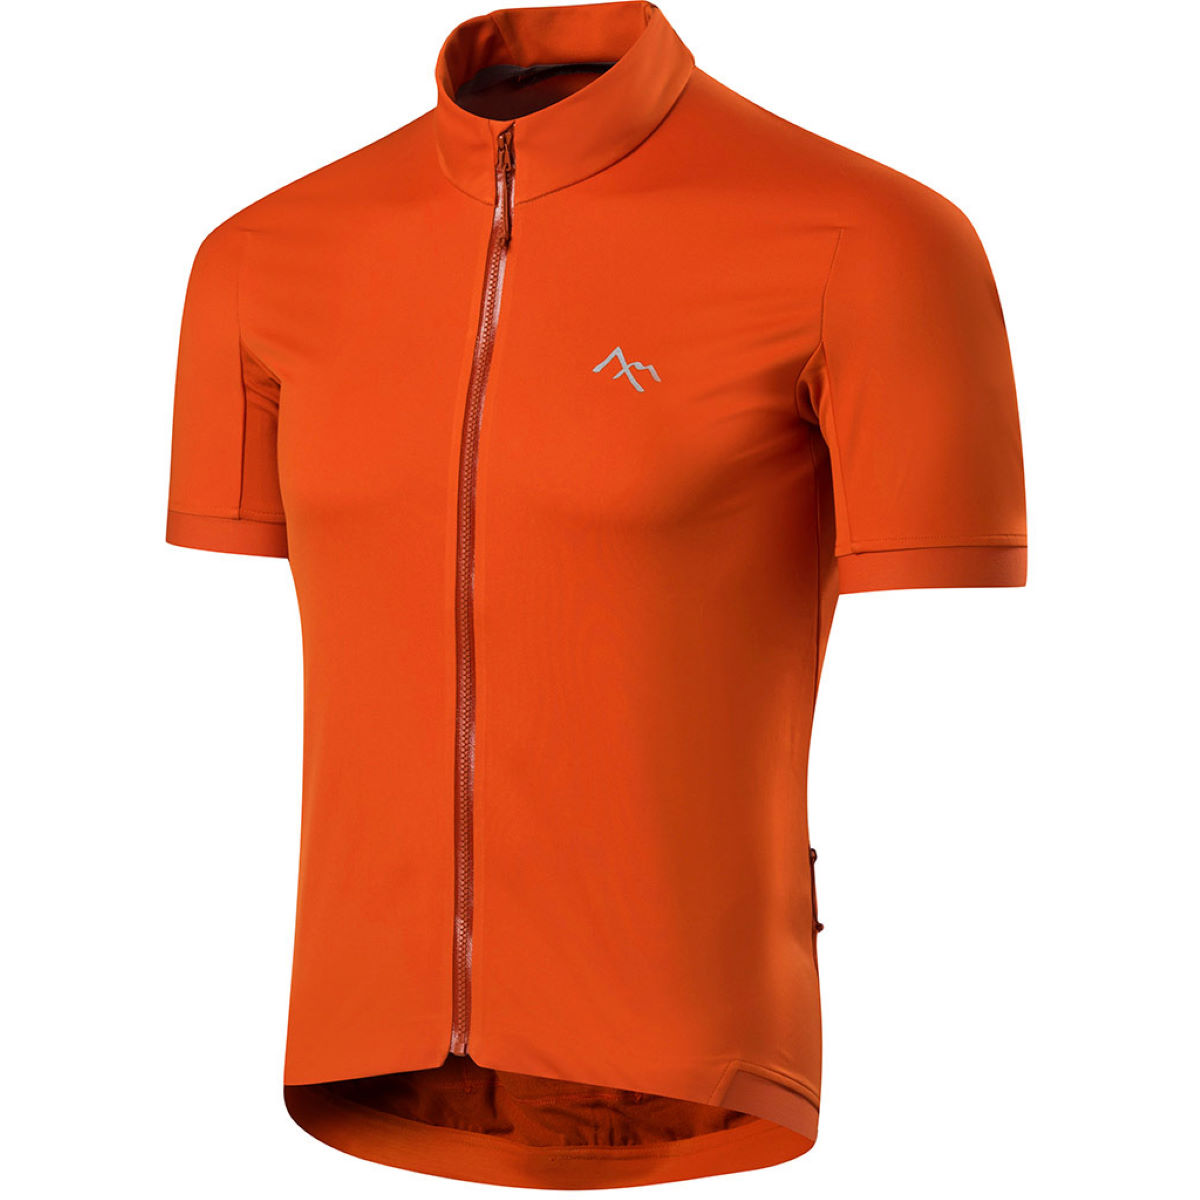 Maillot 7Mesh Synergy (coupe-vent, manches courtes) - XL Ember